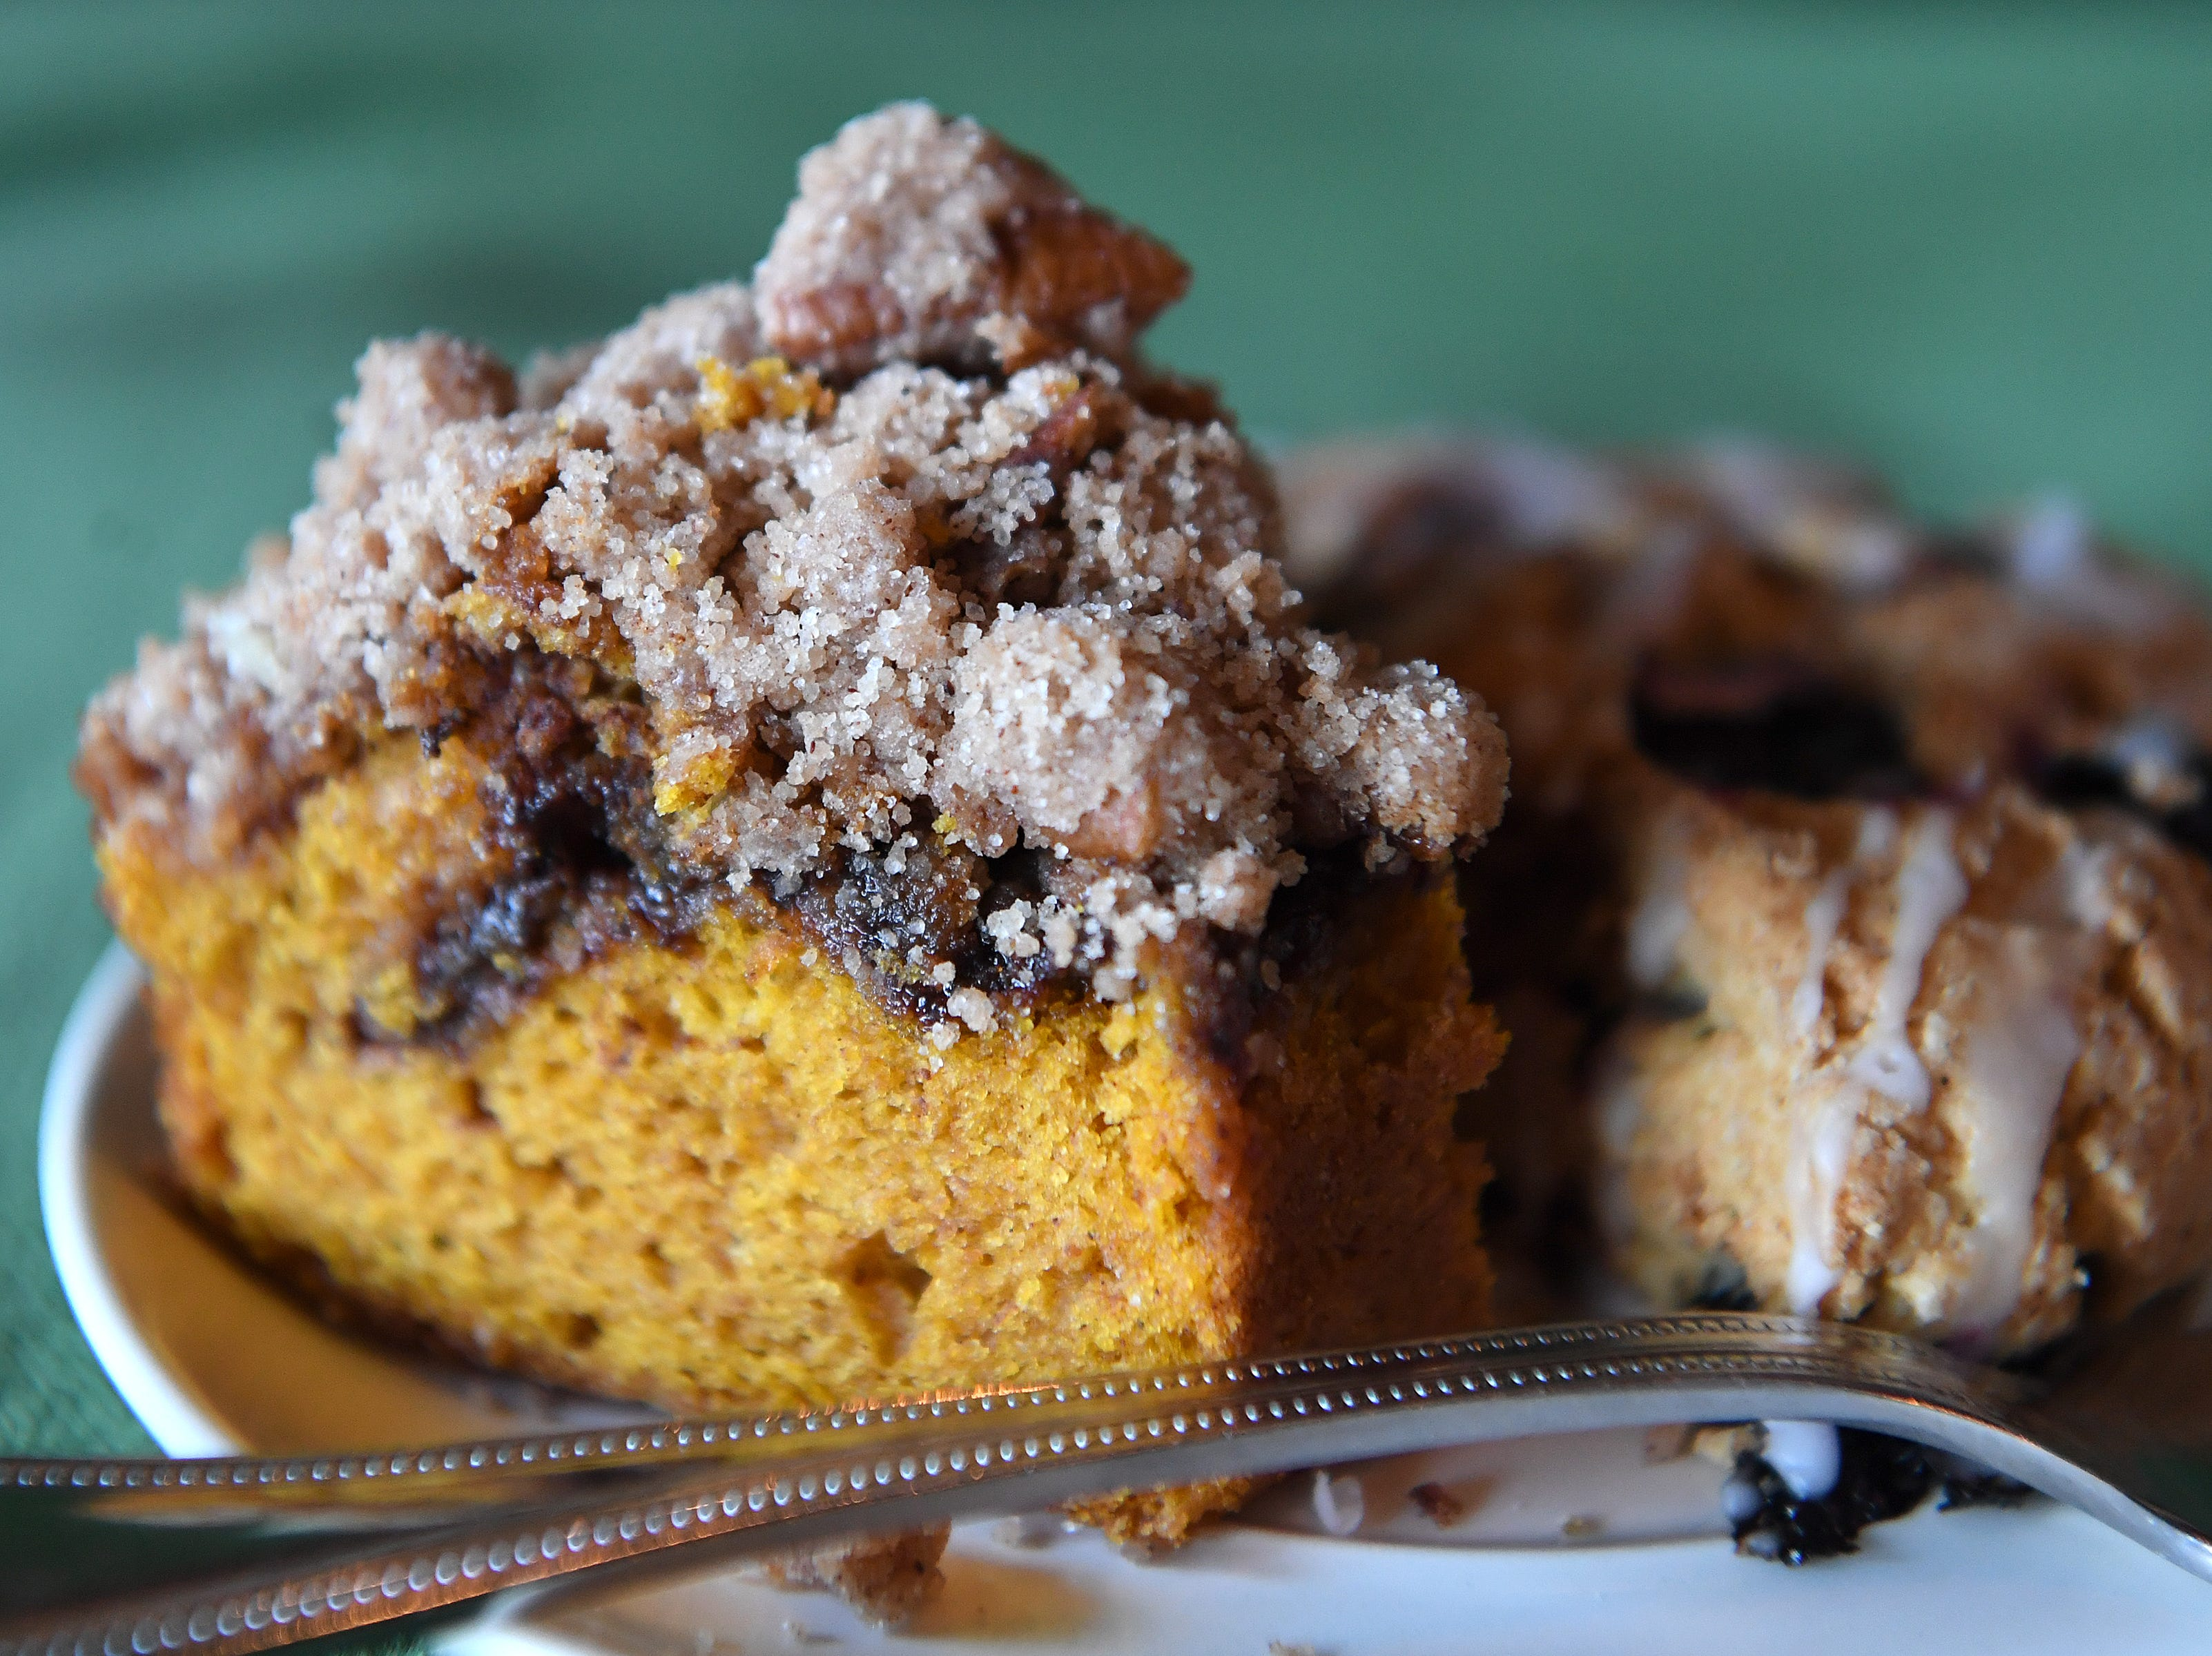 The pumpkin chocolate chip coffee cake at the Beehive Coffee Bar in Arden has a signature streusel crumb topping. The baked goods at the shop are made fresh, in-house, daily.